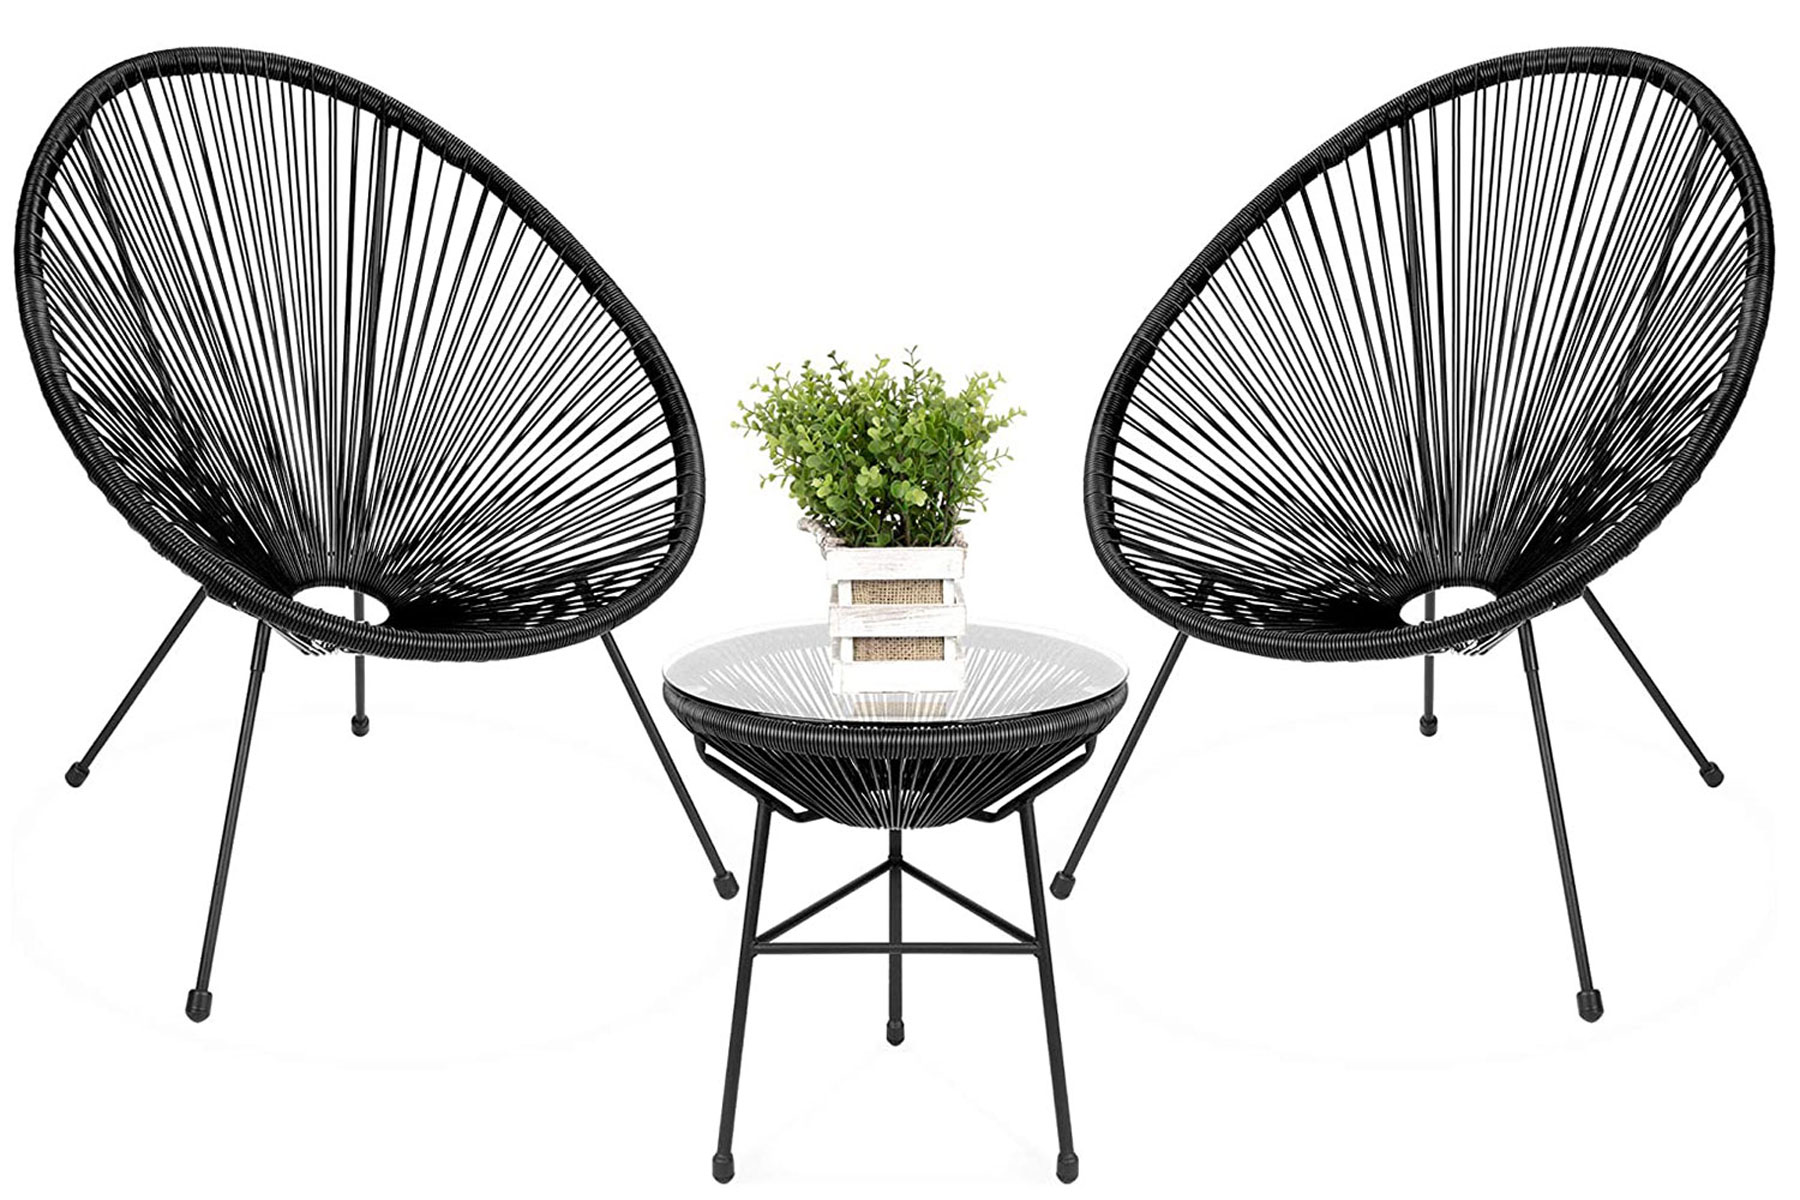 Black outdoor chairs and table